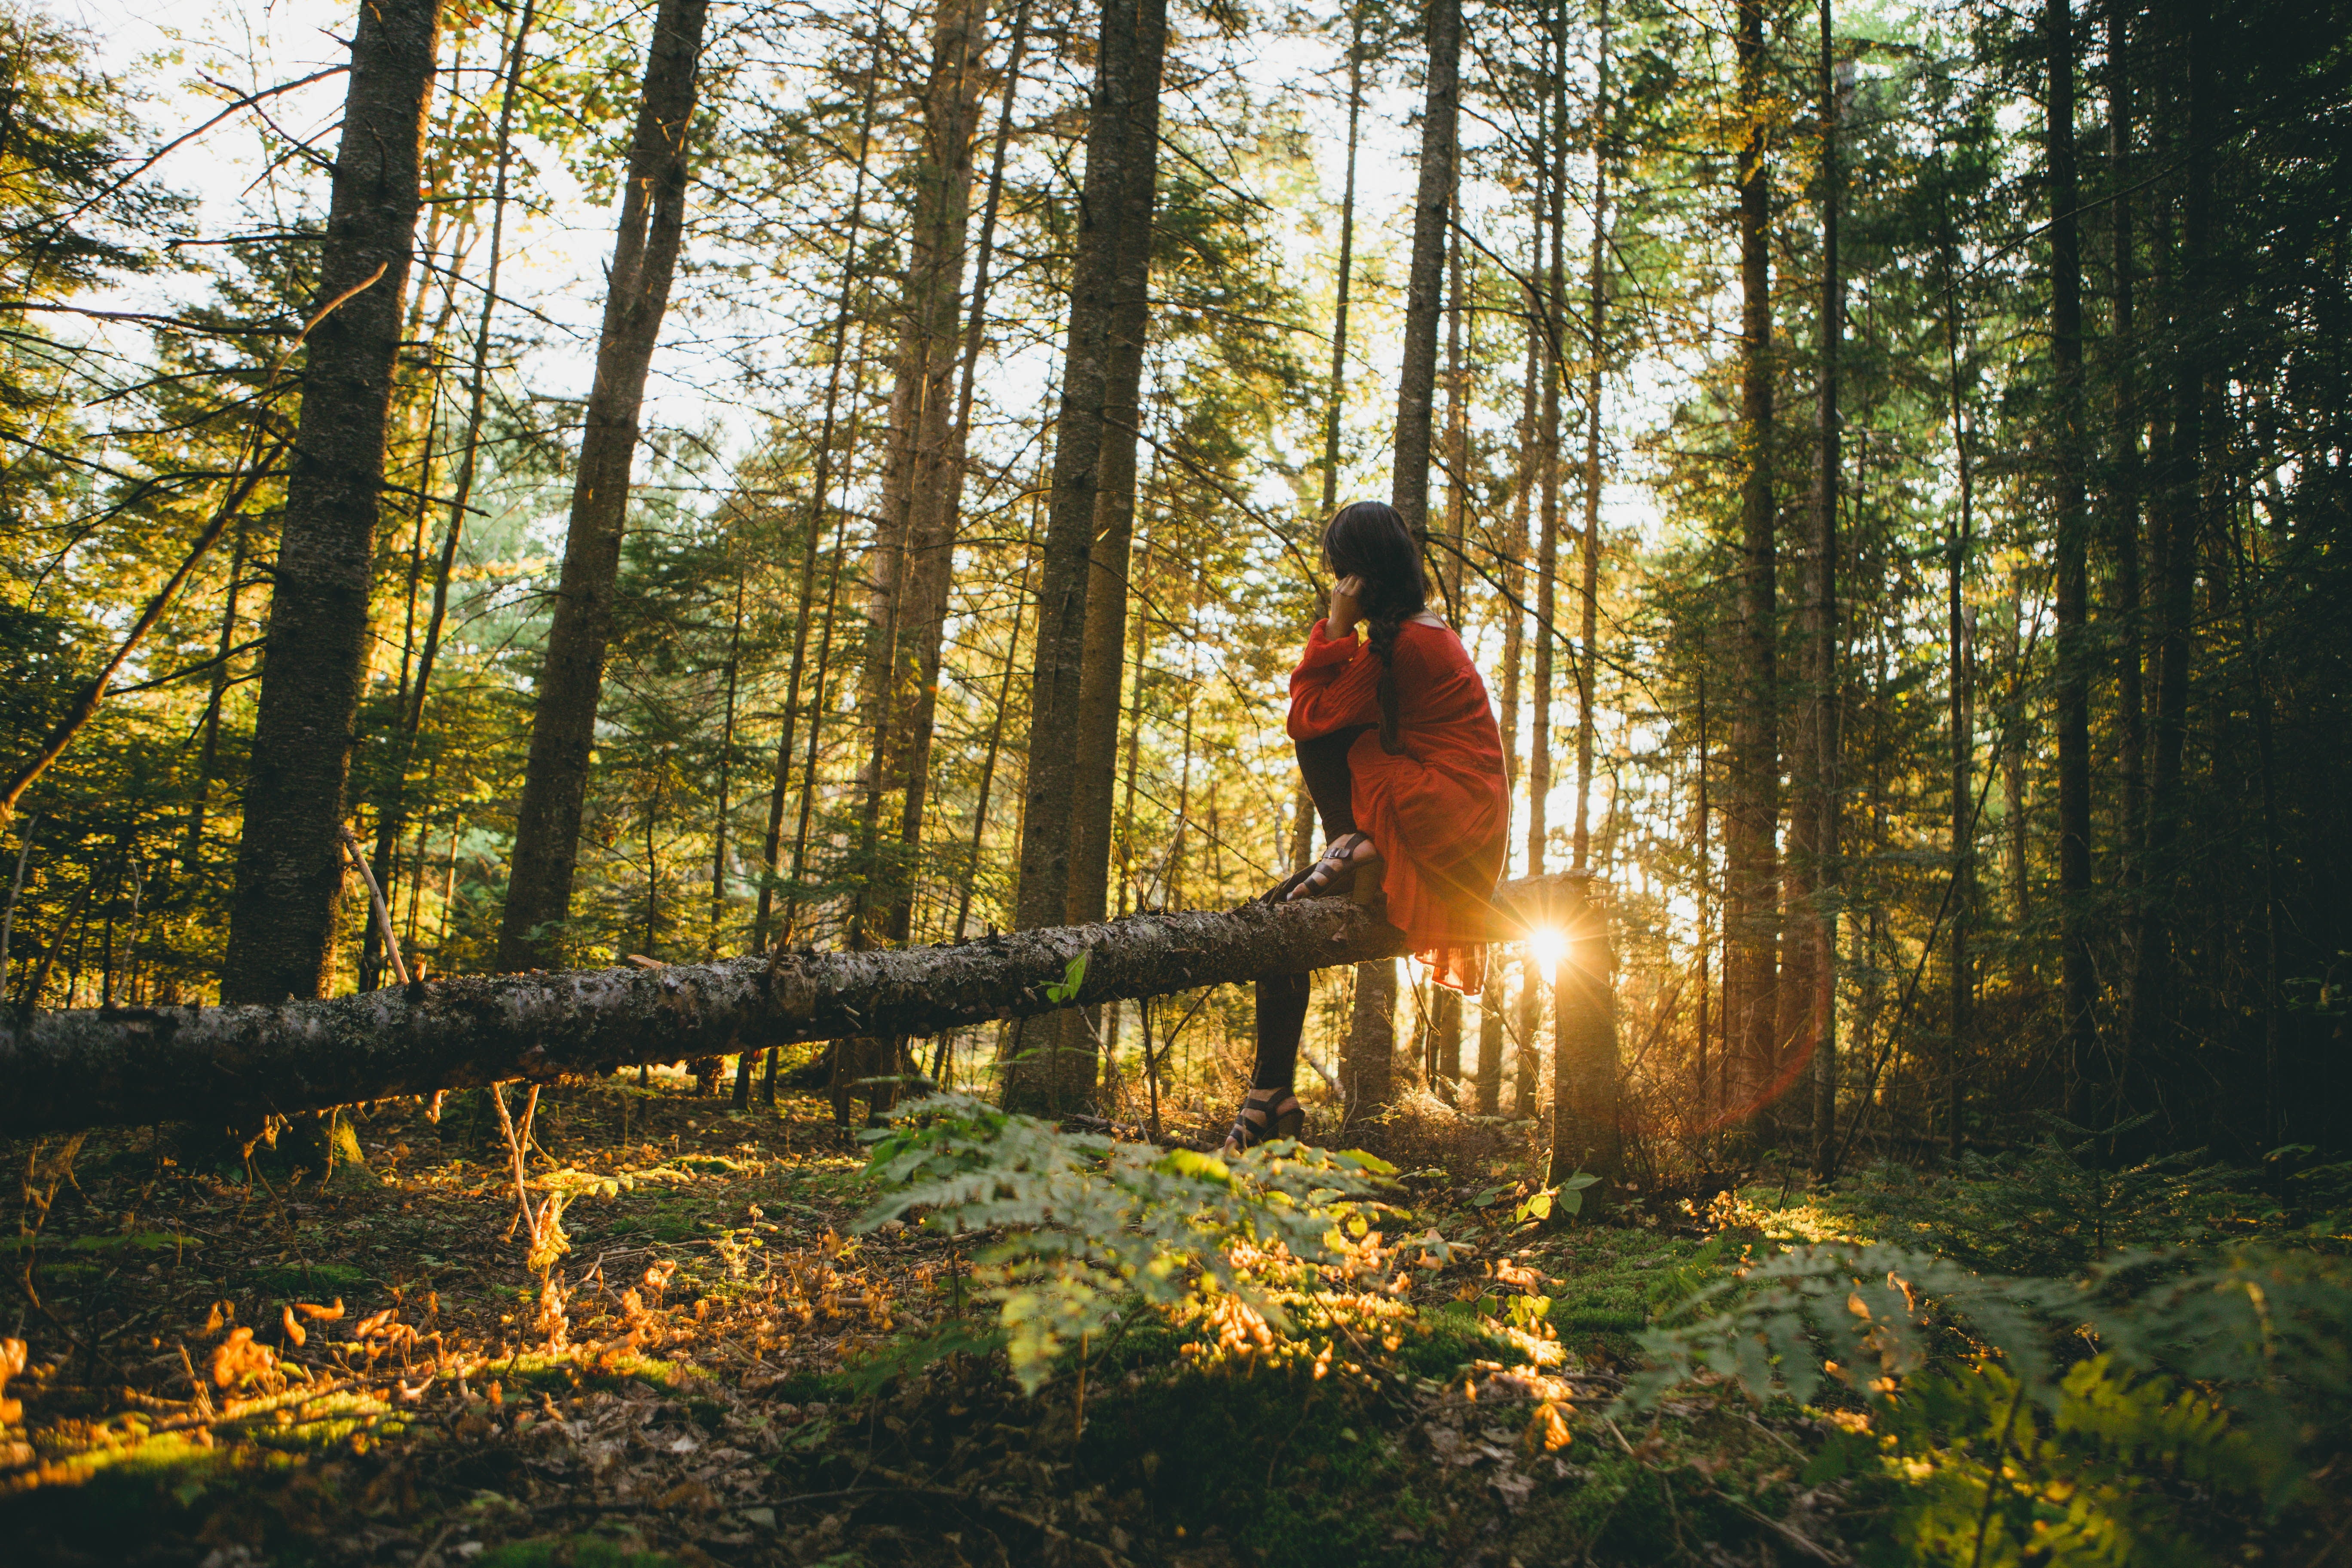 Photo of girl sitting on a fallen tree in the forest as the sun shines through the trees.